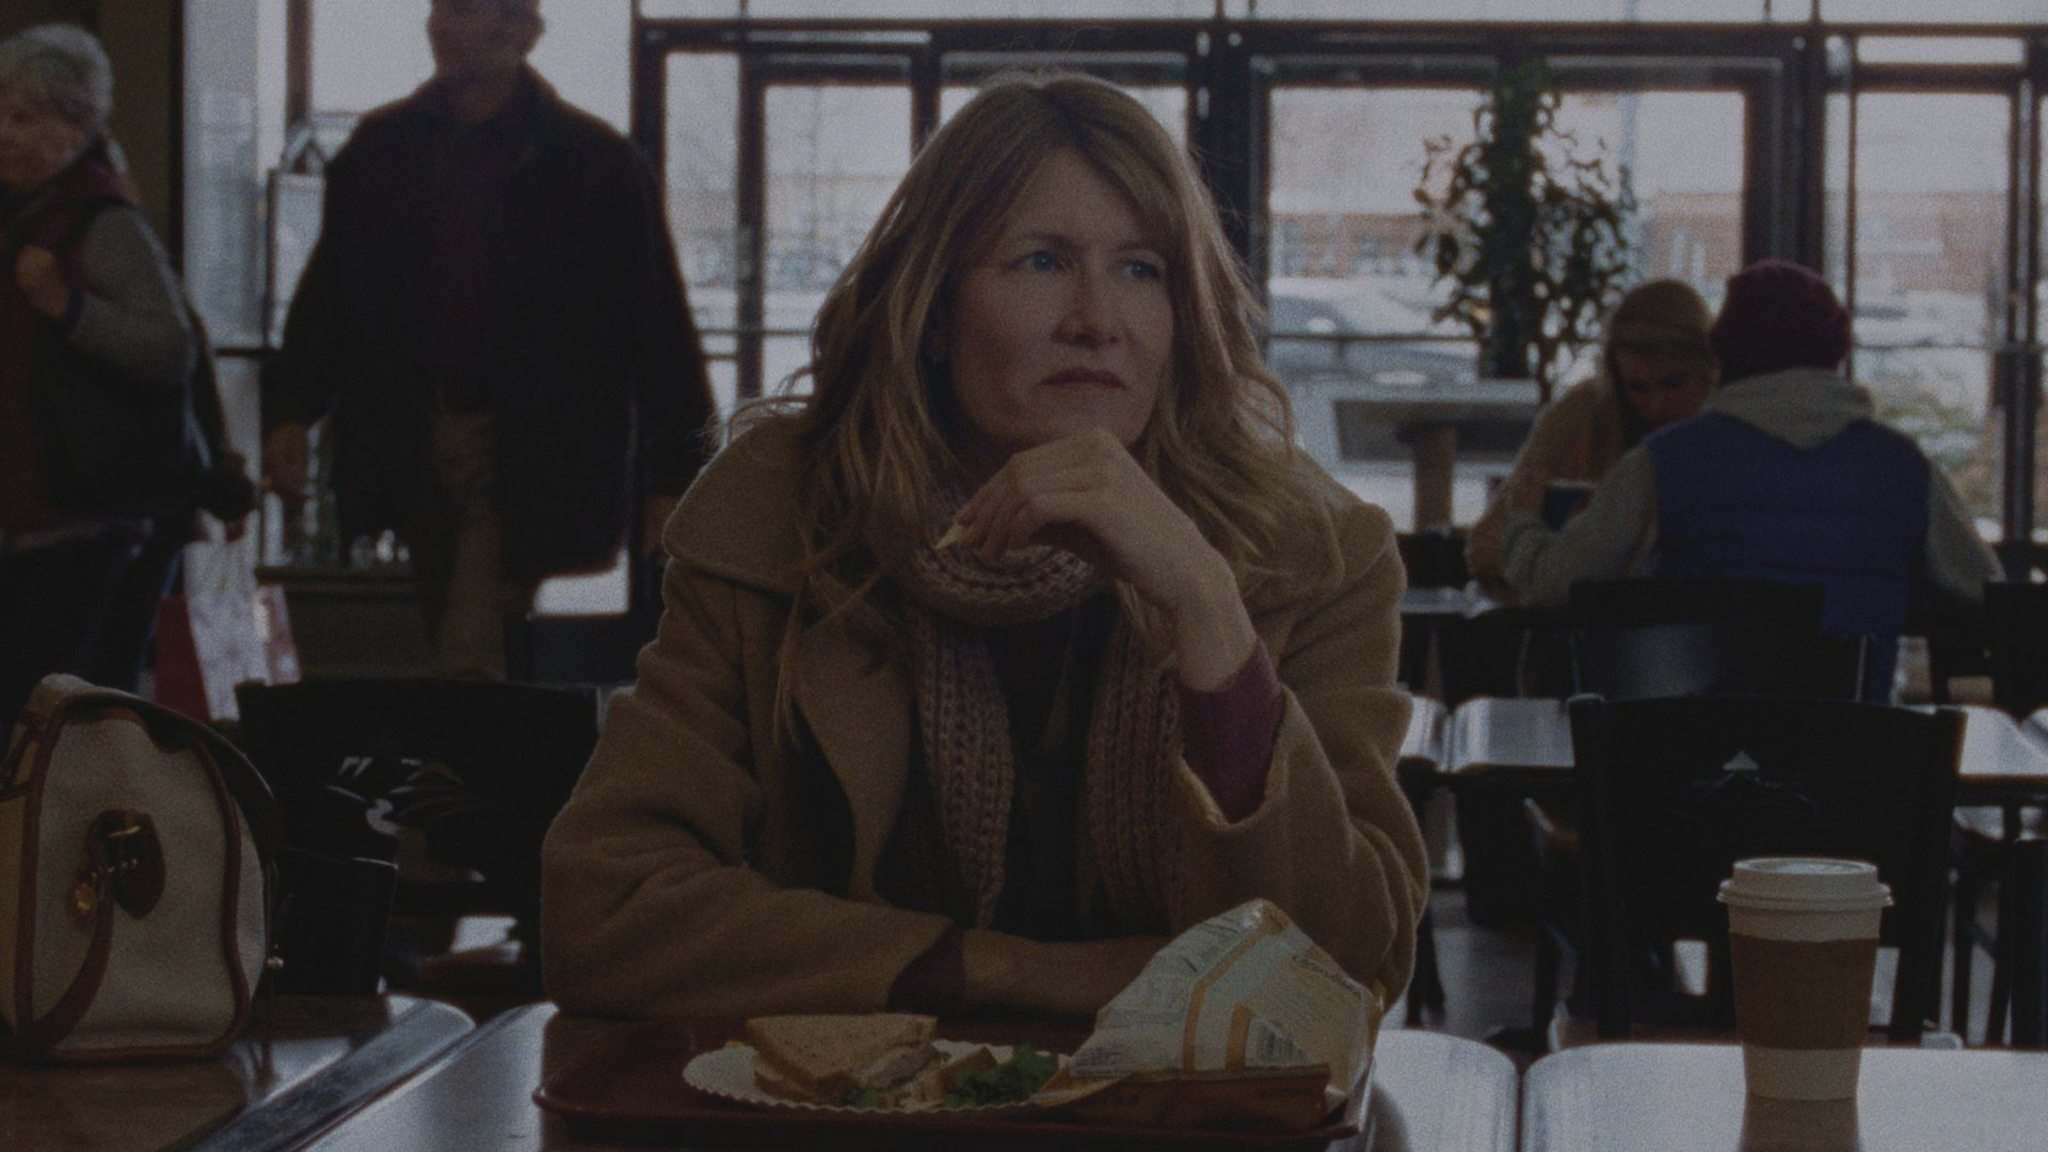 IFC FILMS</p><p>Laura Dern is enjoying a well-deserved moment with her turn in Certain Women, as well as roles in Big Little Lies and the rebooted Twin Peaks.</p>